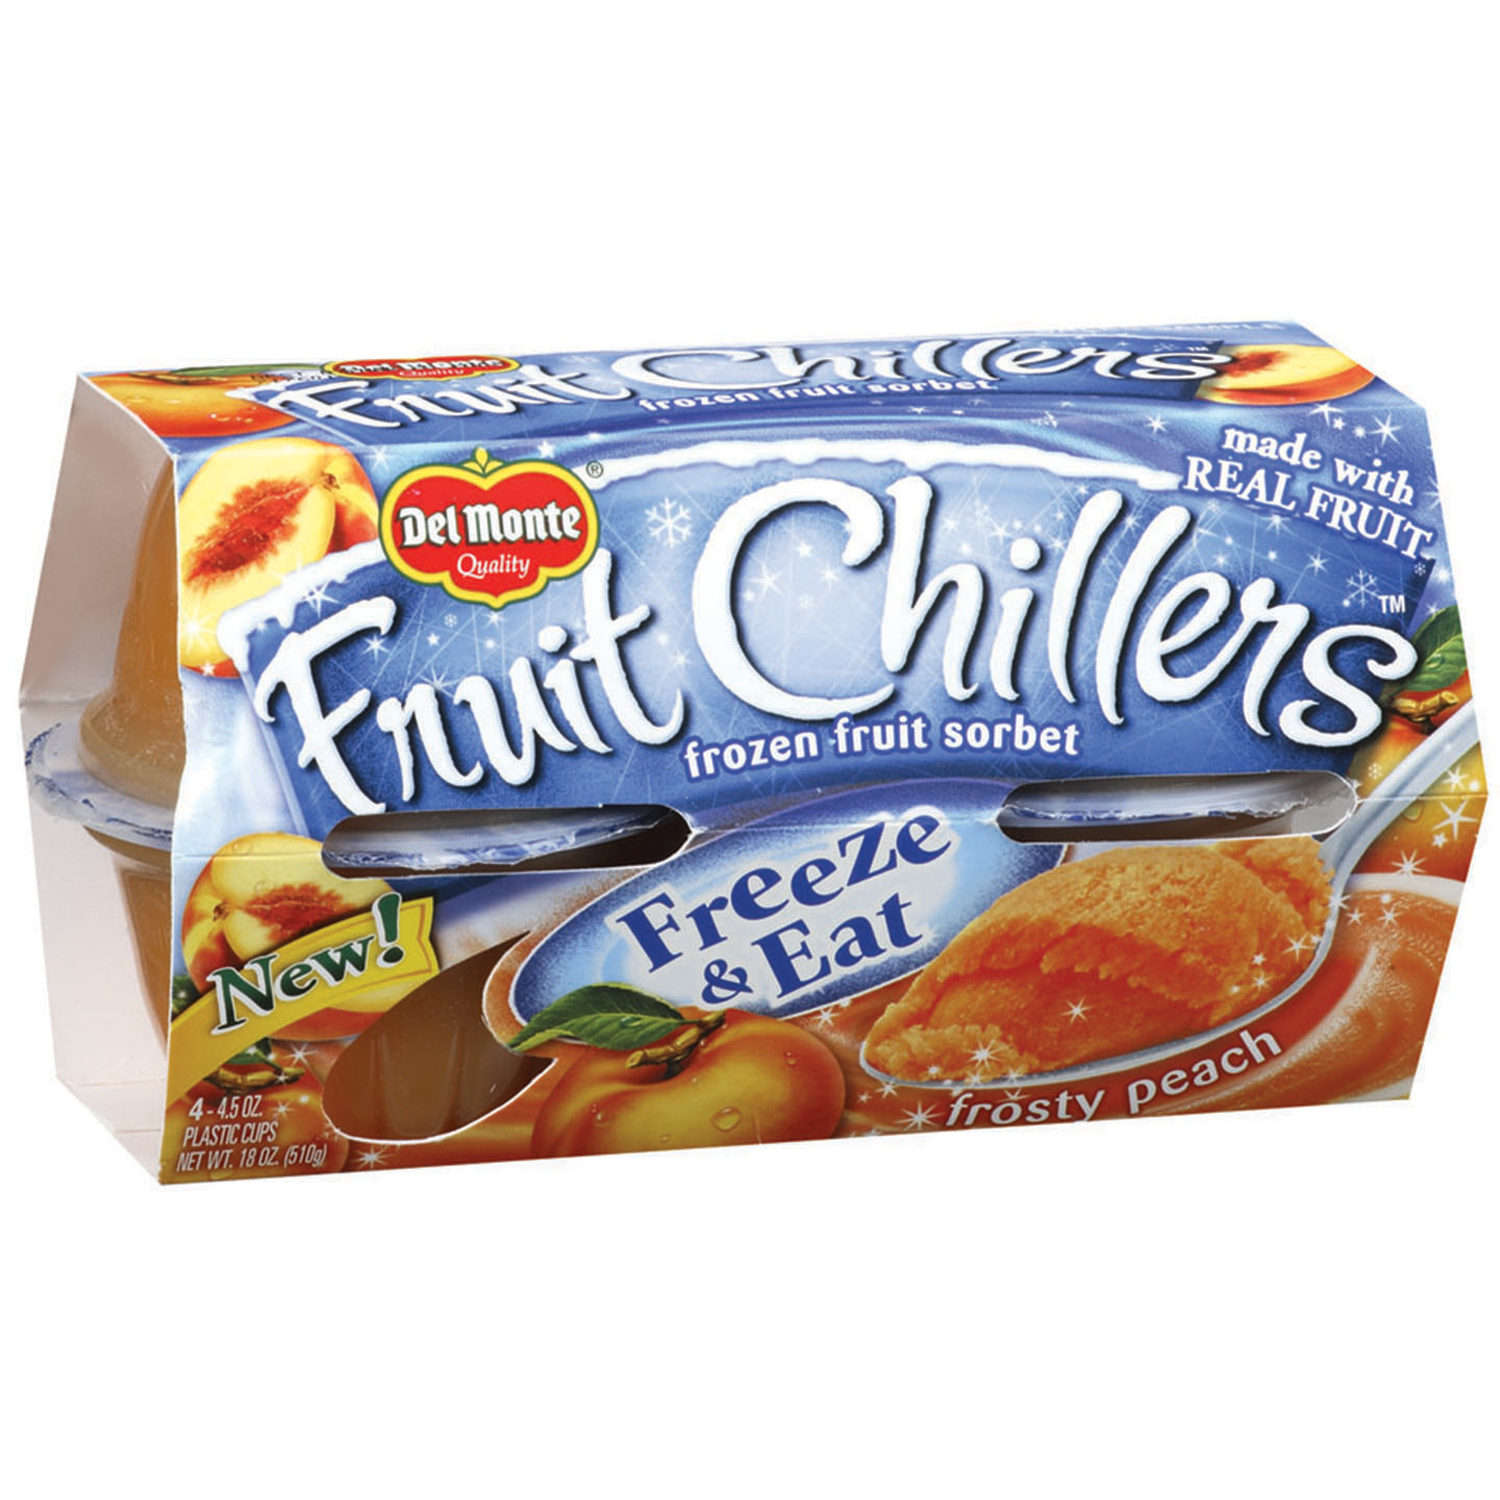 Fruit Chillers Frosty Peach 4.5 oz Frozen Fruit Sorbet, 4 pk